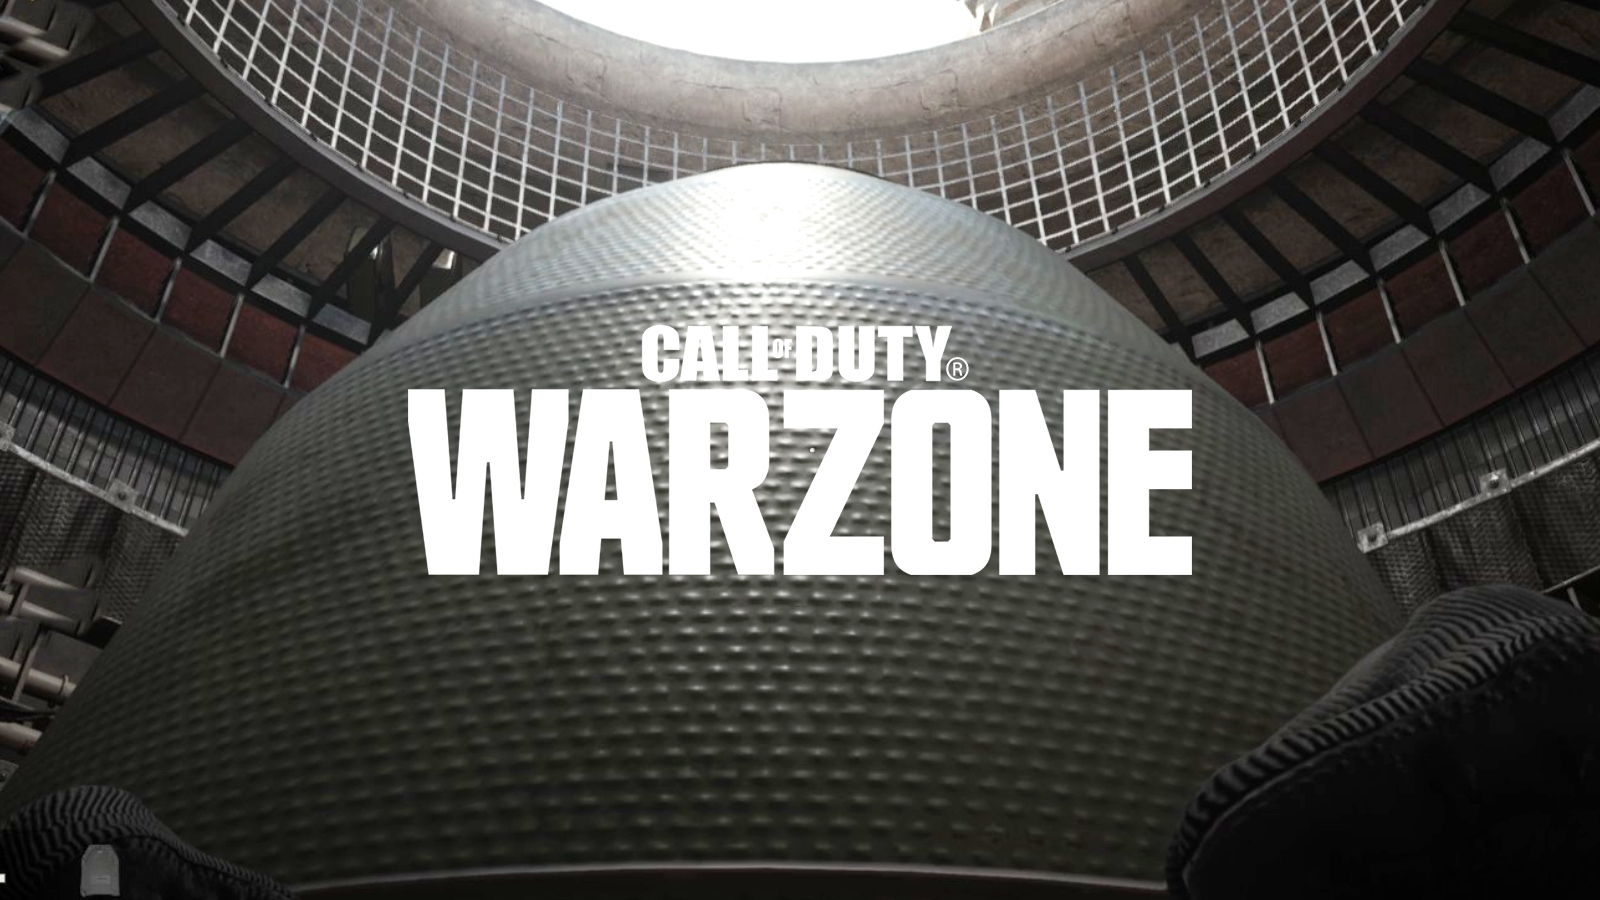 All Warzone weapon silo locations